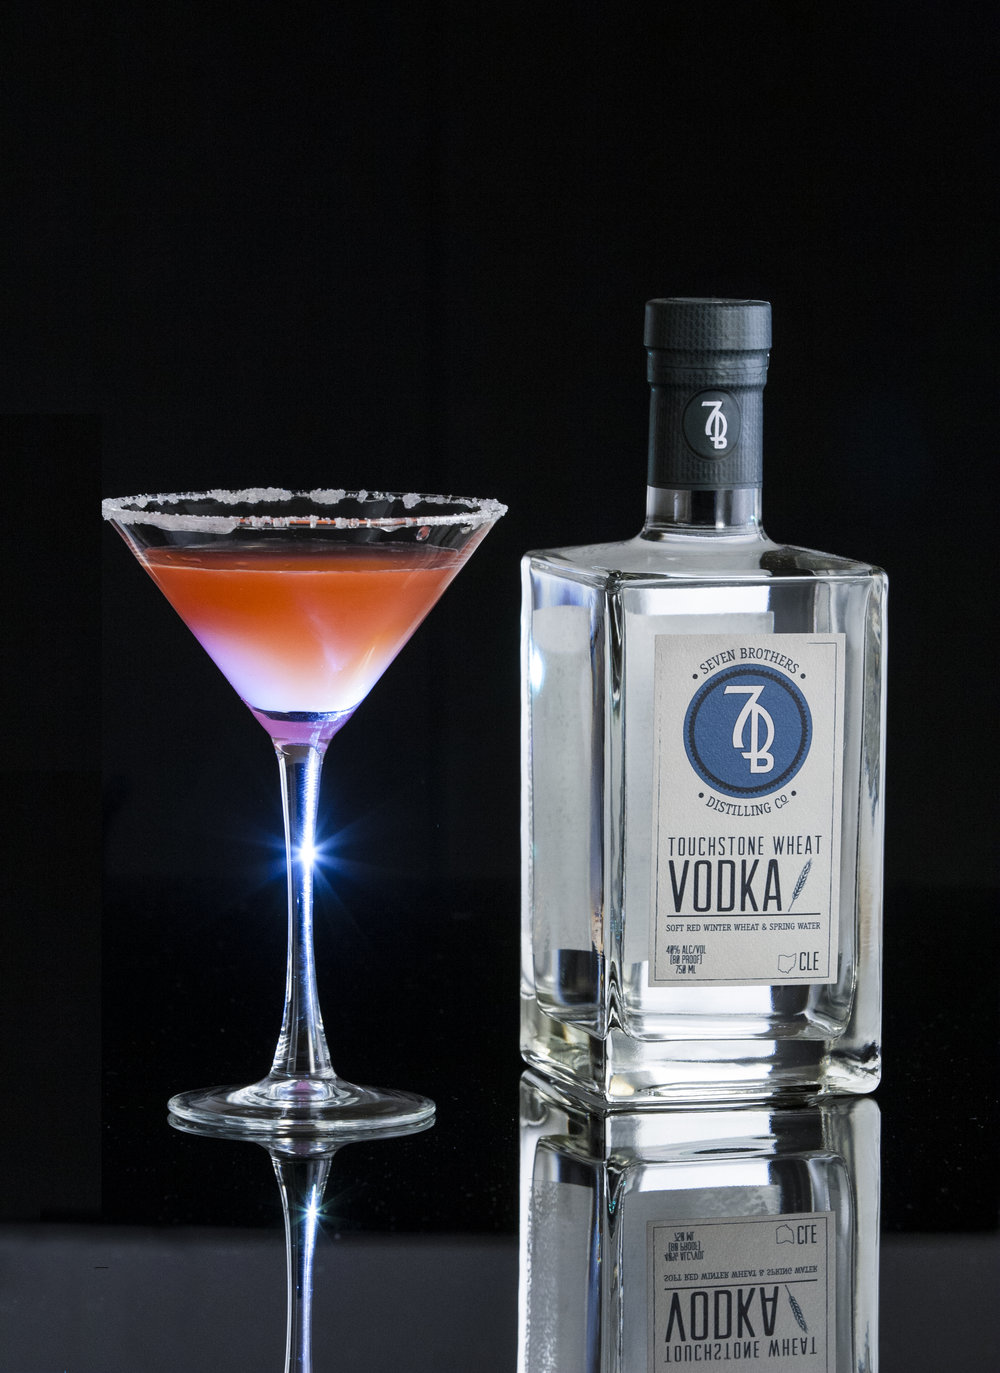 THE ANGRY SISTER - 2 oz Seven Brothers Touchstone Wheat Vodka1 oz Limoncello.5 oz ChambordCombine all ingredients and shake over ice. Strain into a Martini glass with a sugar rim